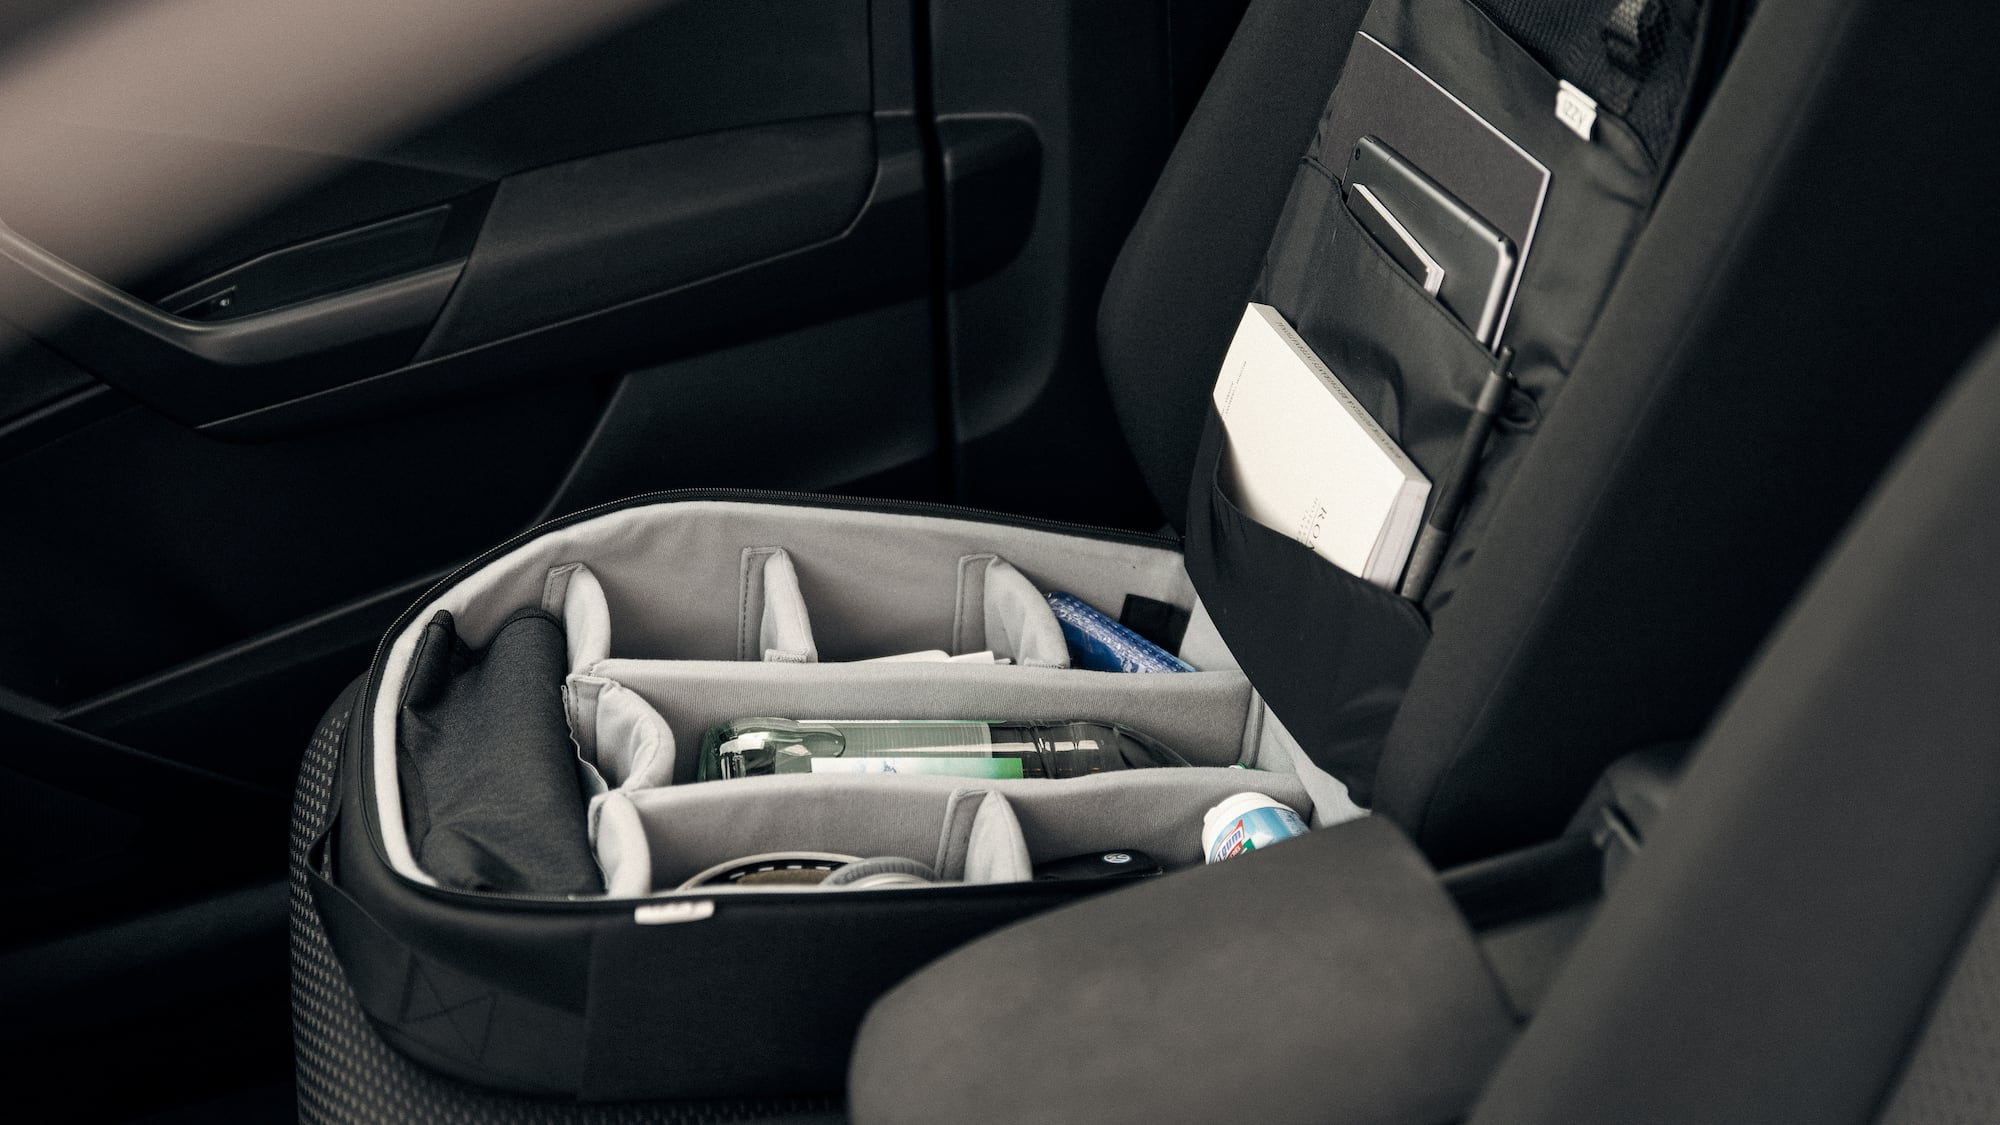 izzy smart car organizer is a flexible bag for your vehicle